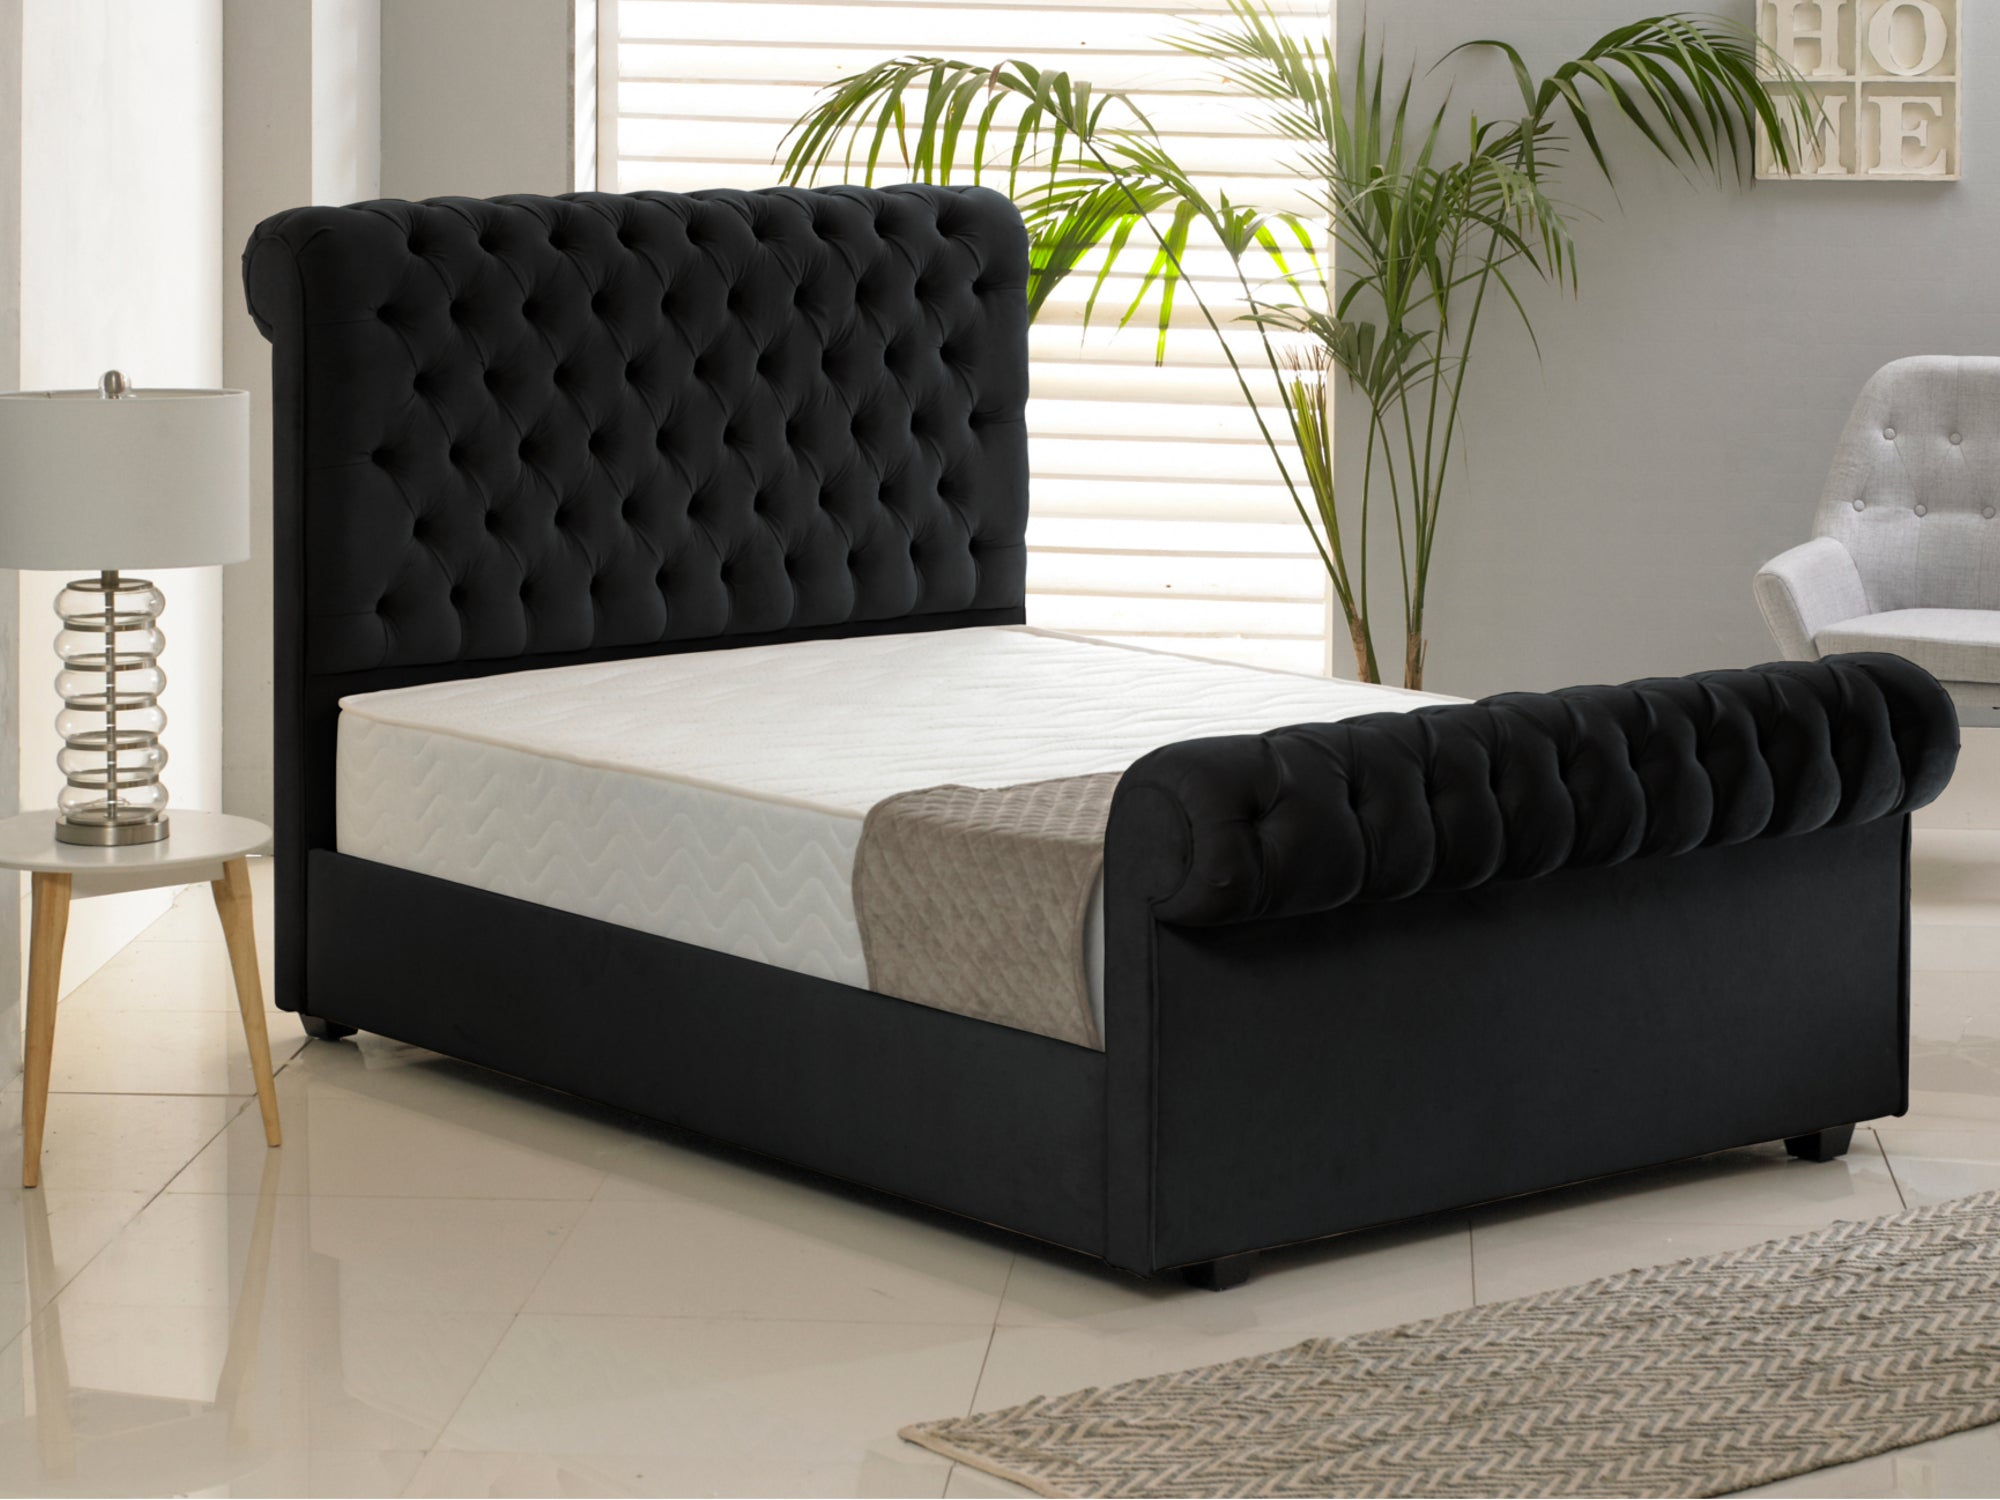 Windsor Luxury Bed Frame In Hercules Black The Cosy Bedding Company